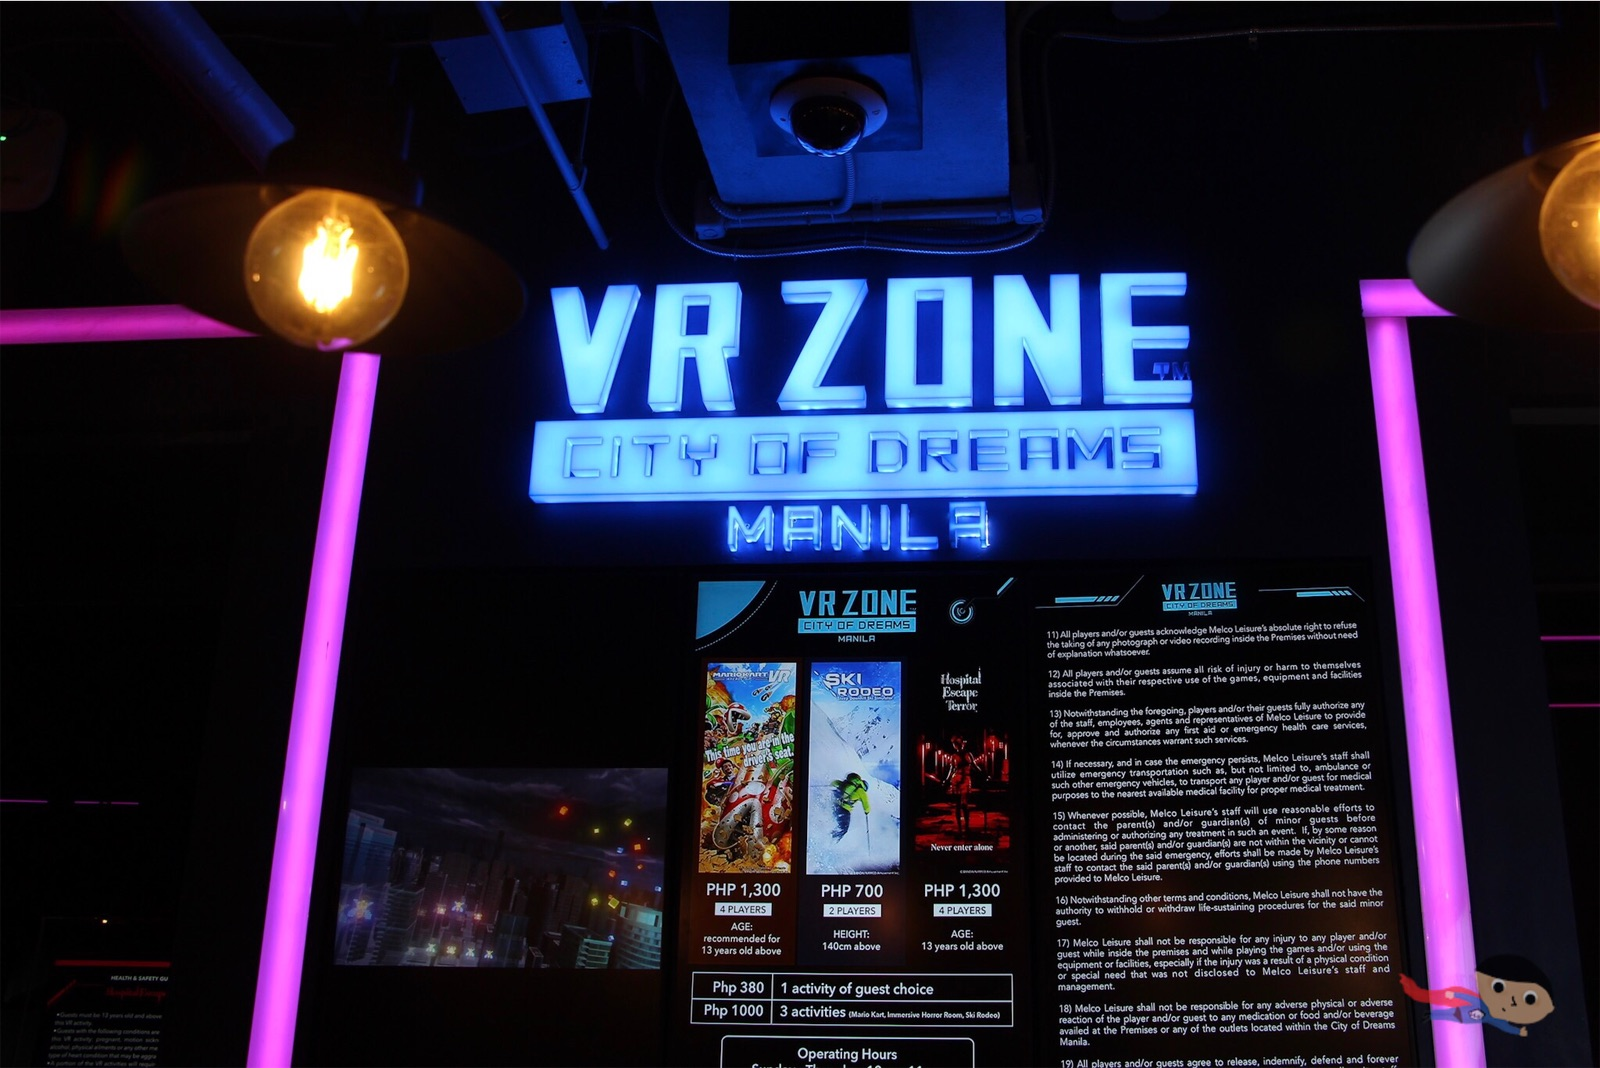 The garage s vr zone in city of dreams rates review wander